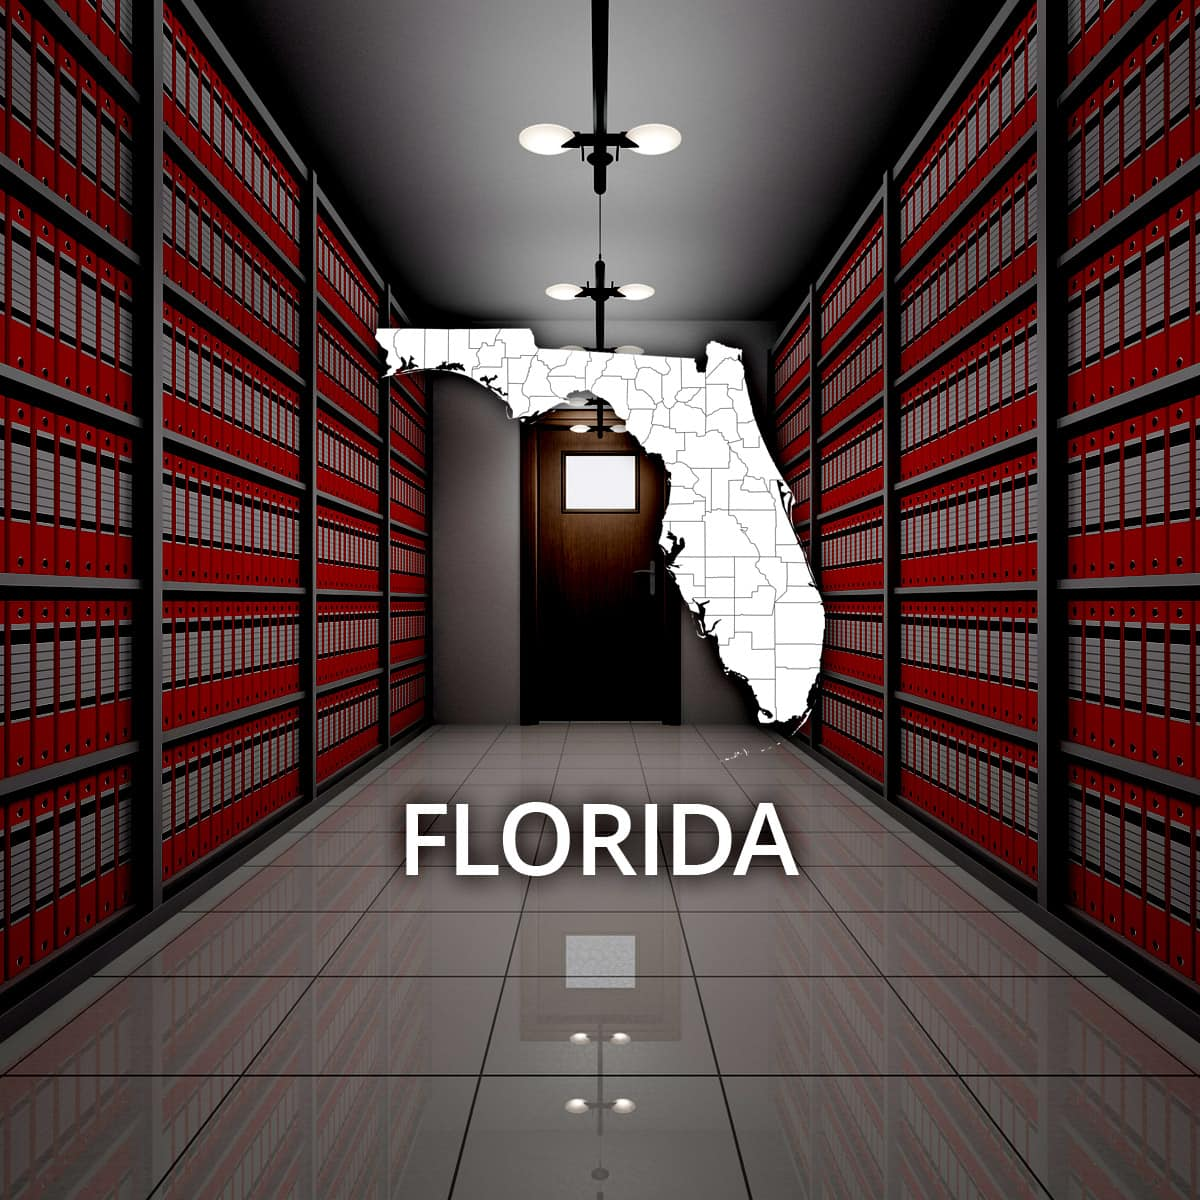 Florida Public Records